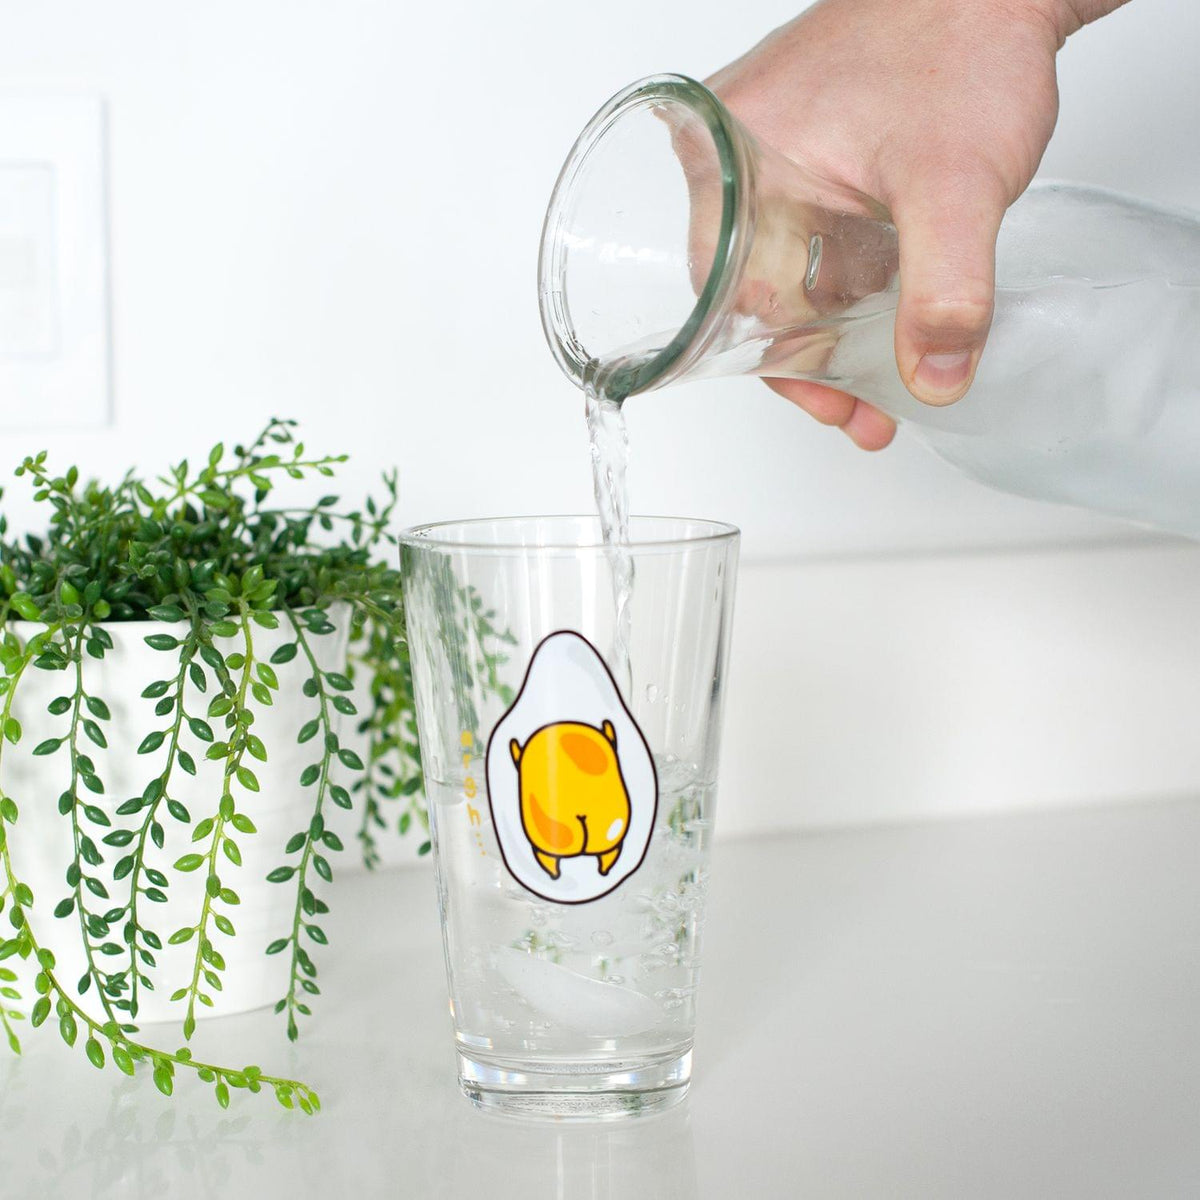 OFFICIAL Gudetama Lazy Egg Glass | Feat. Gudetama Laying Face Down | 16 Oz. Cup